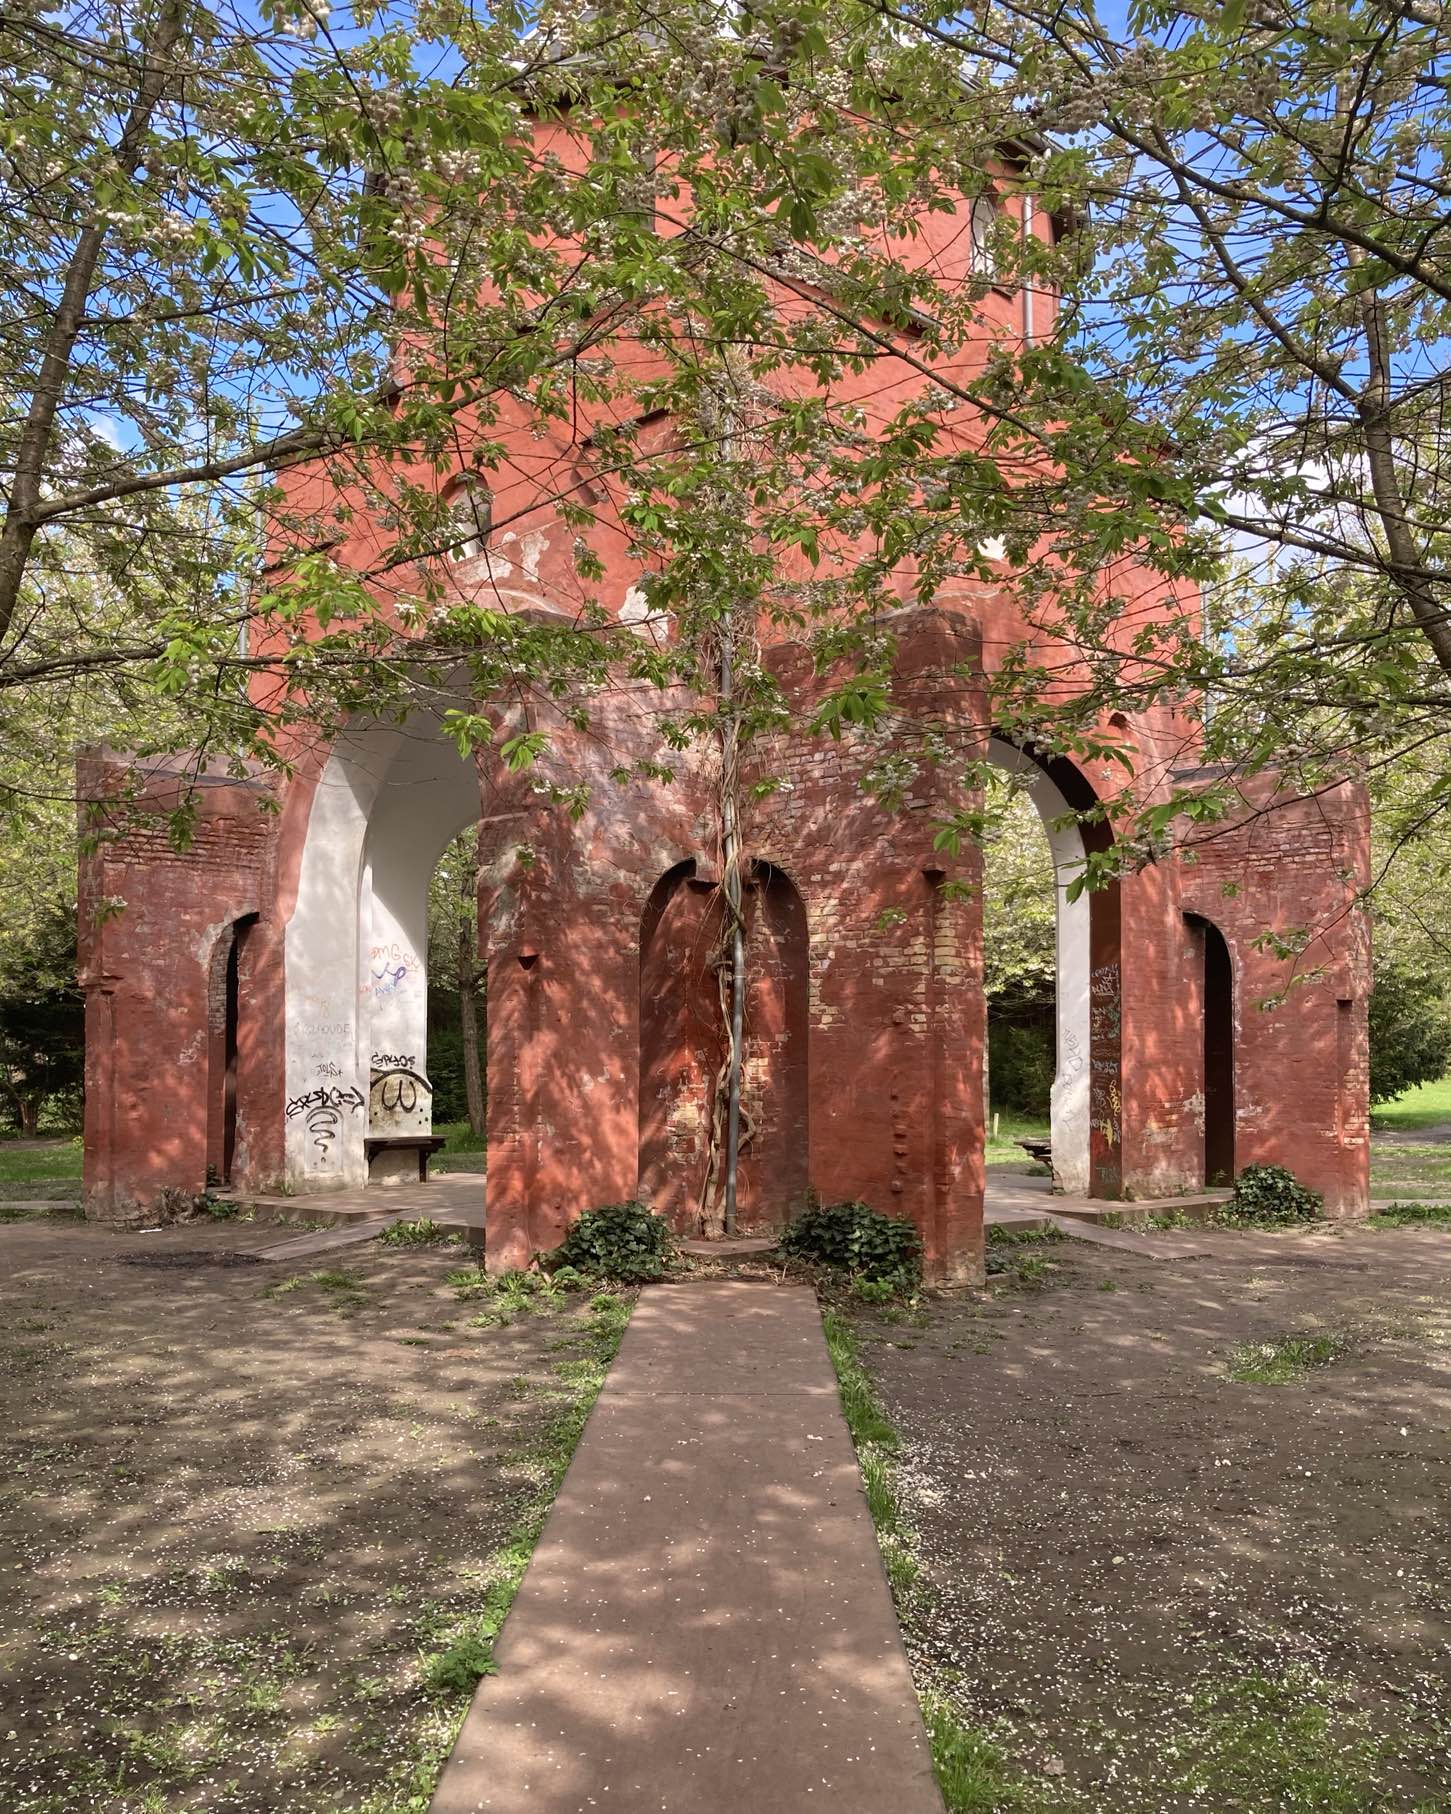 A little Rorschach test with this pavilion, the remains of the West Chapel, converted as part of the Crossroads Project (Stjernevejsprojektet) in the middle of Vestre Kirkegaard. A fresh morning, blossoms sprinkled on the ground. Birds singing. The sounds of nature. And some SPYO graffiti if you look closely.